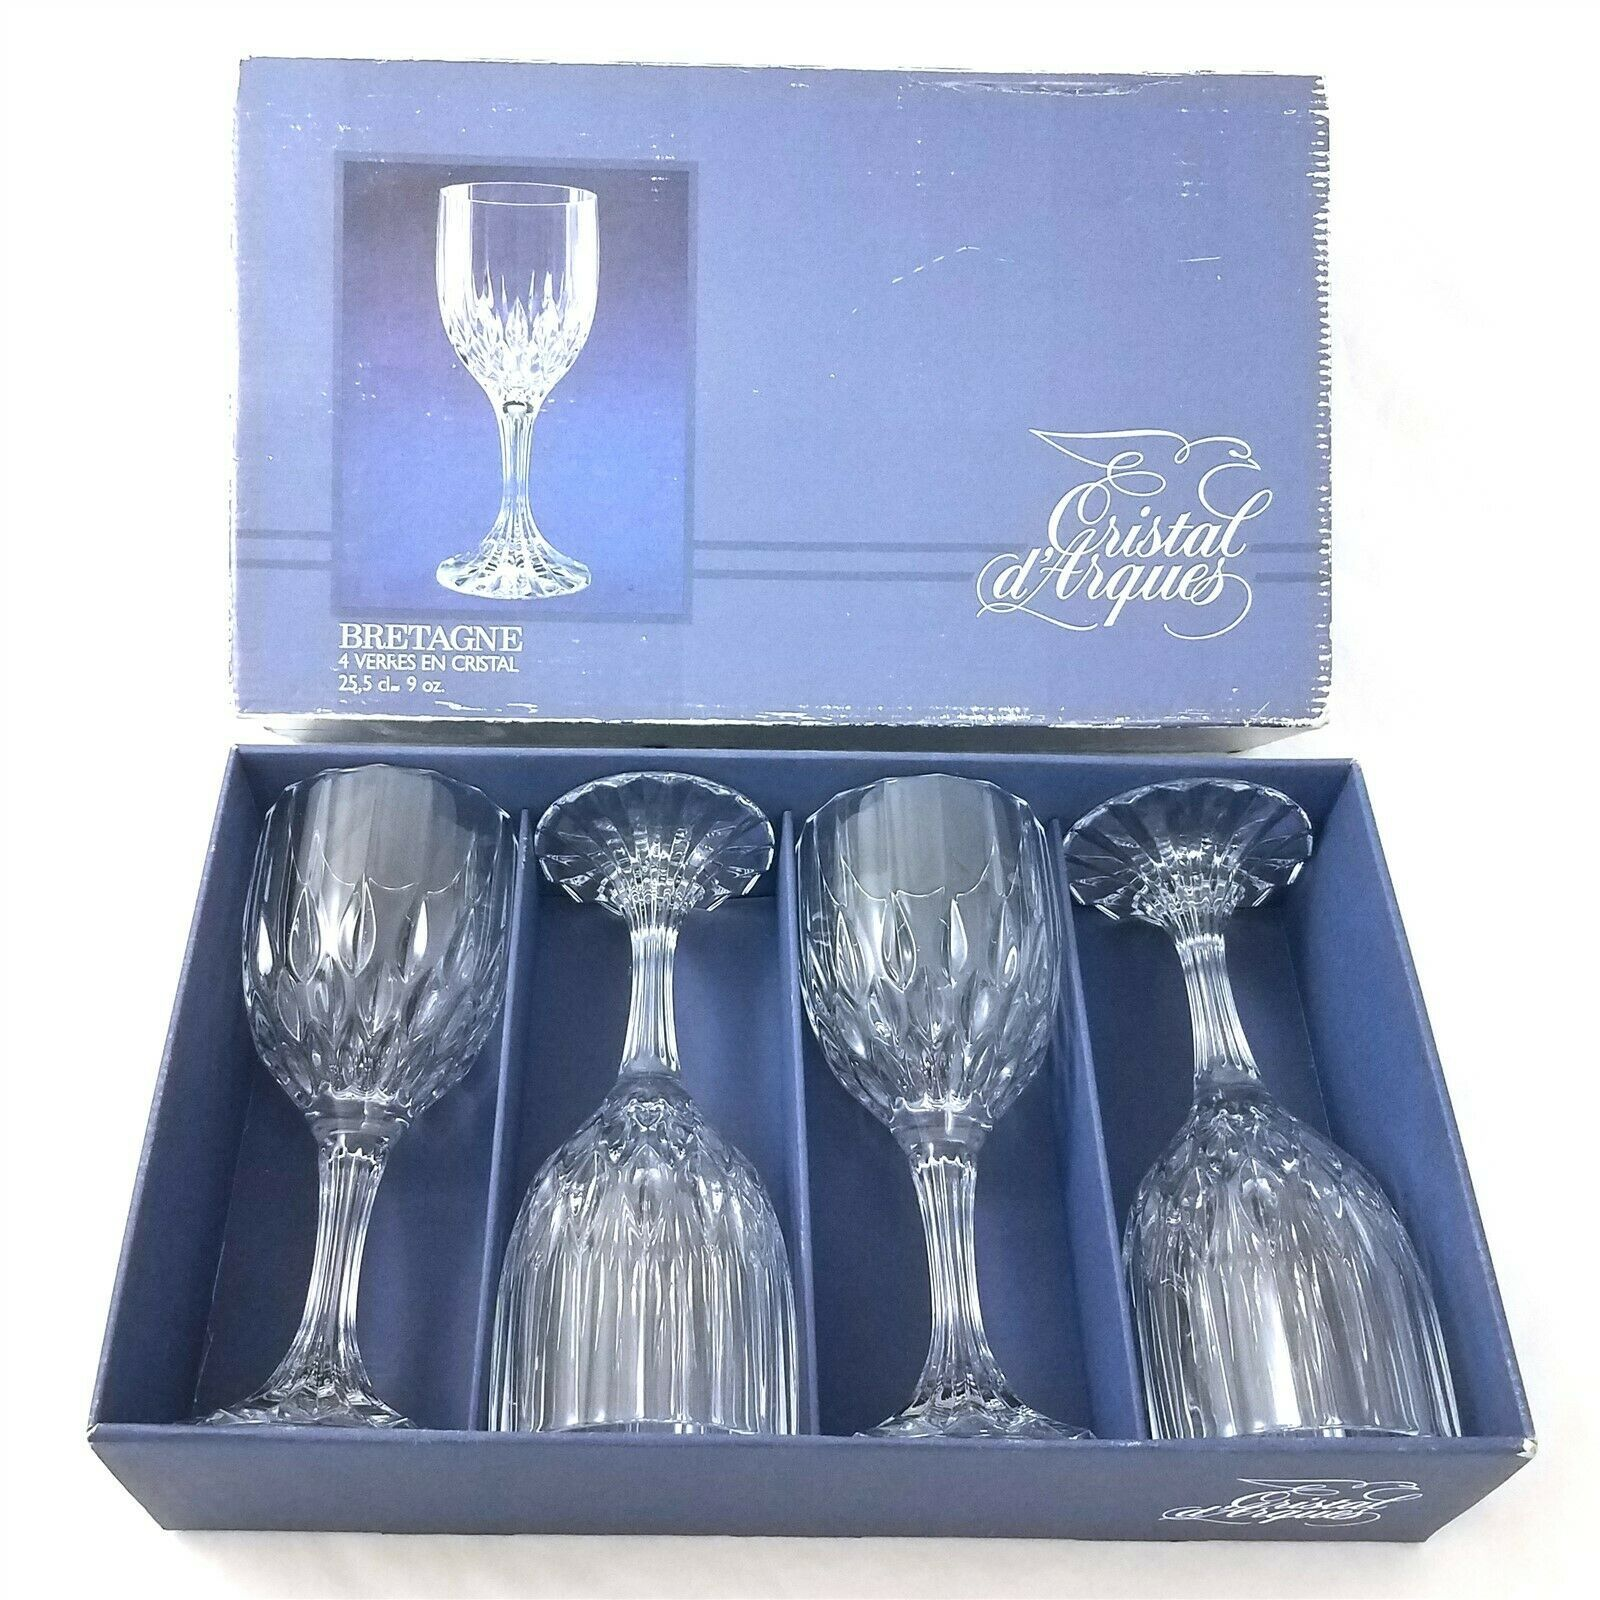 Cristal d'Arques Bretagne Lead Crystal Wine Glasses Set of 4 with Box 9 Oz - $34.64